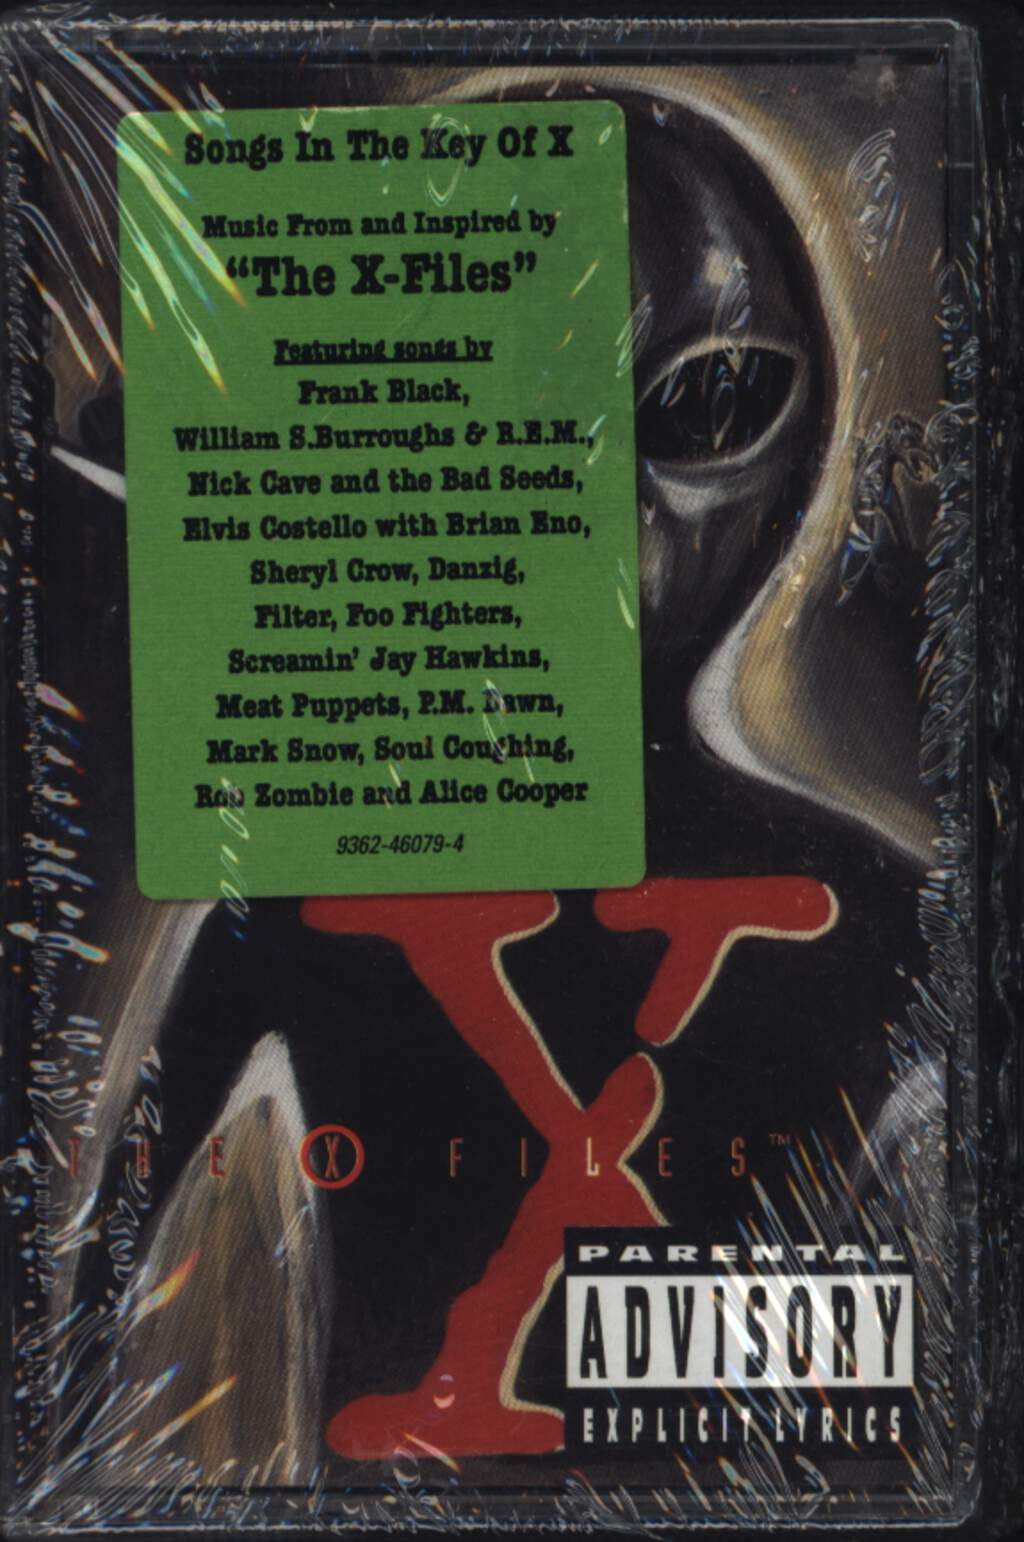 Various: The X-Files - Songs In The Key Of X, Tape